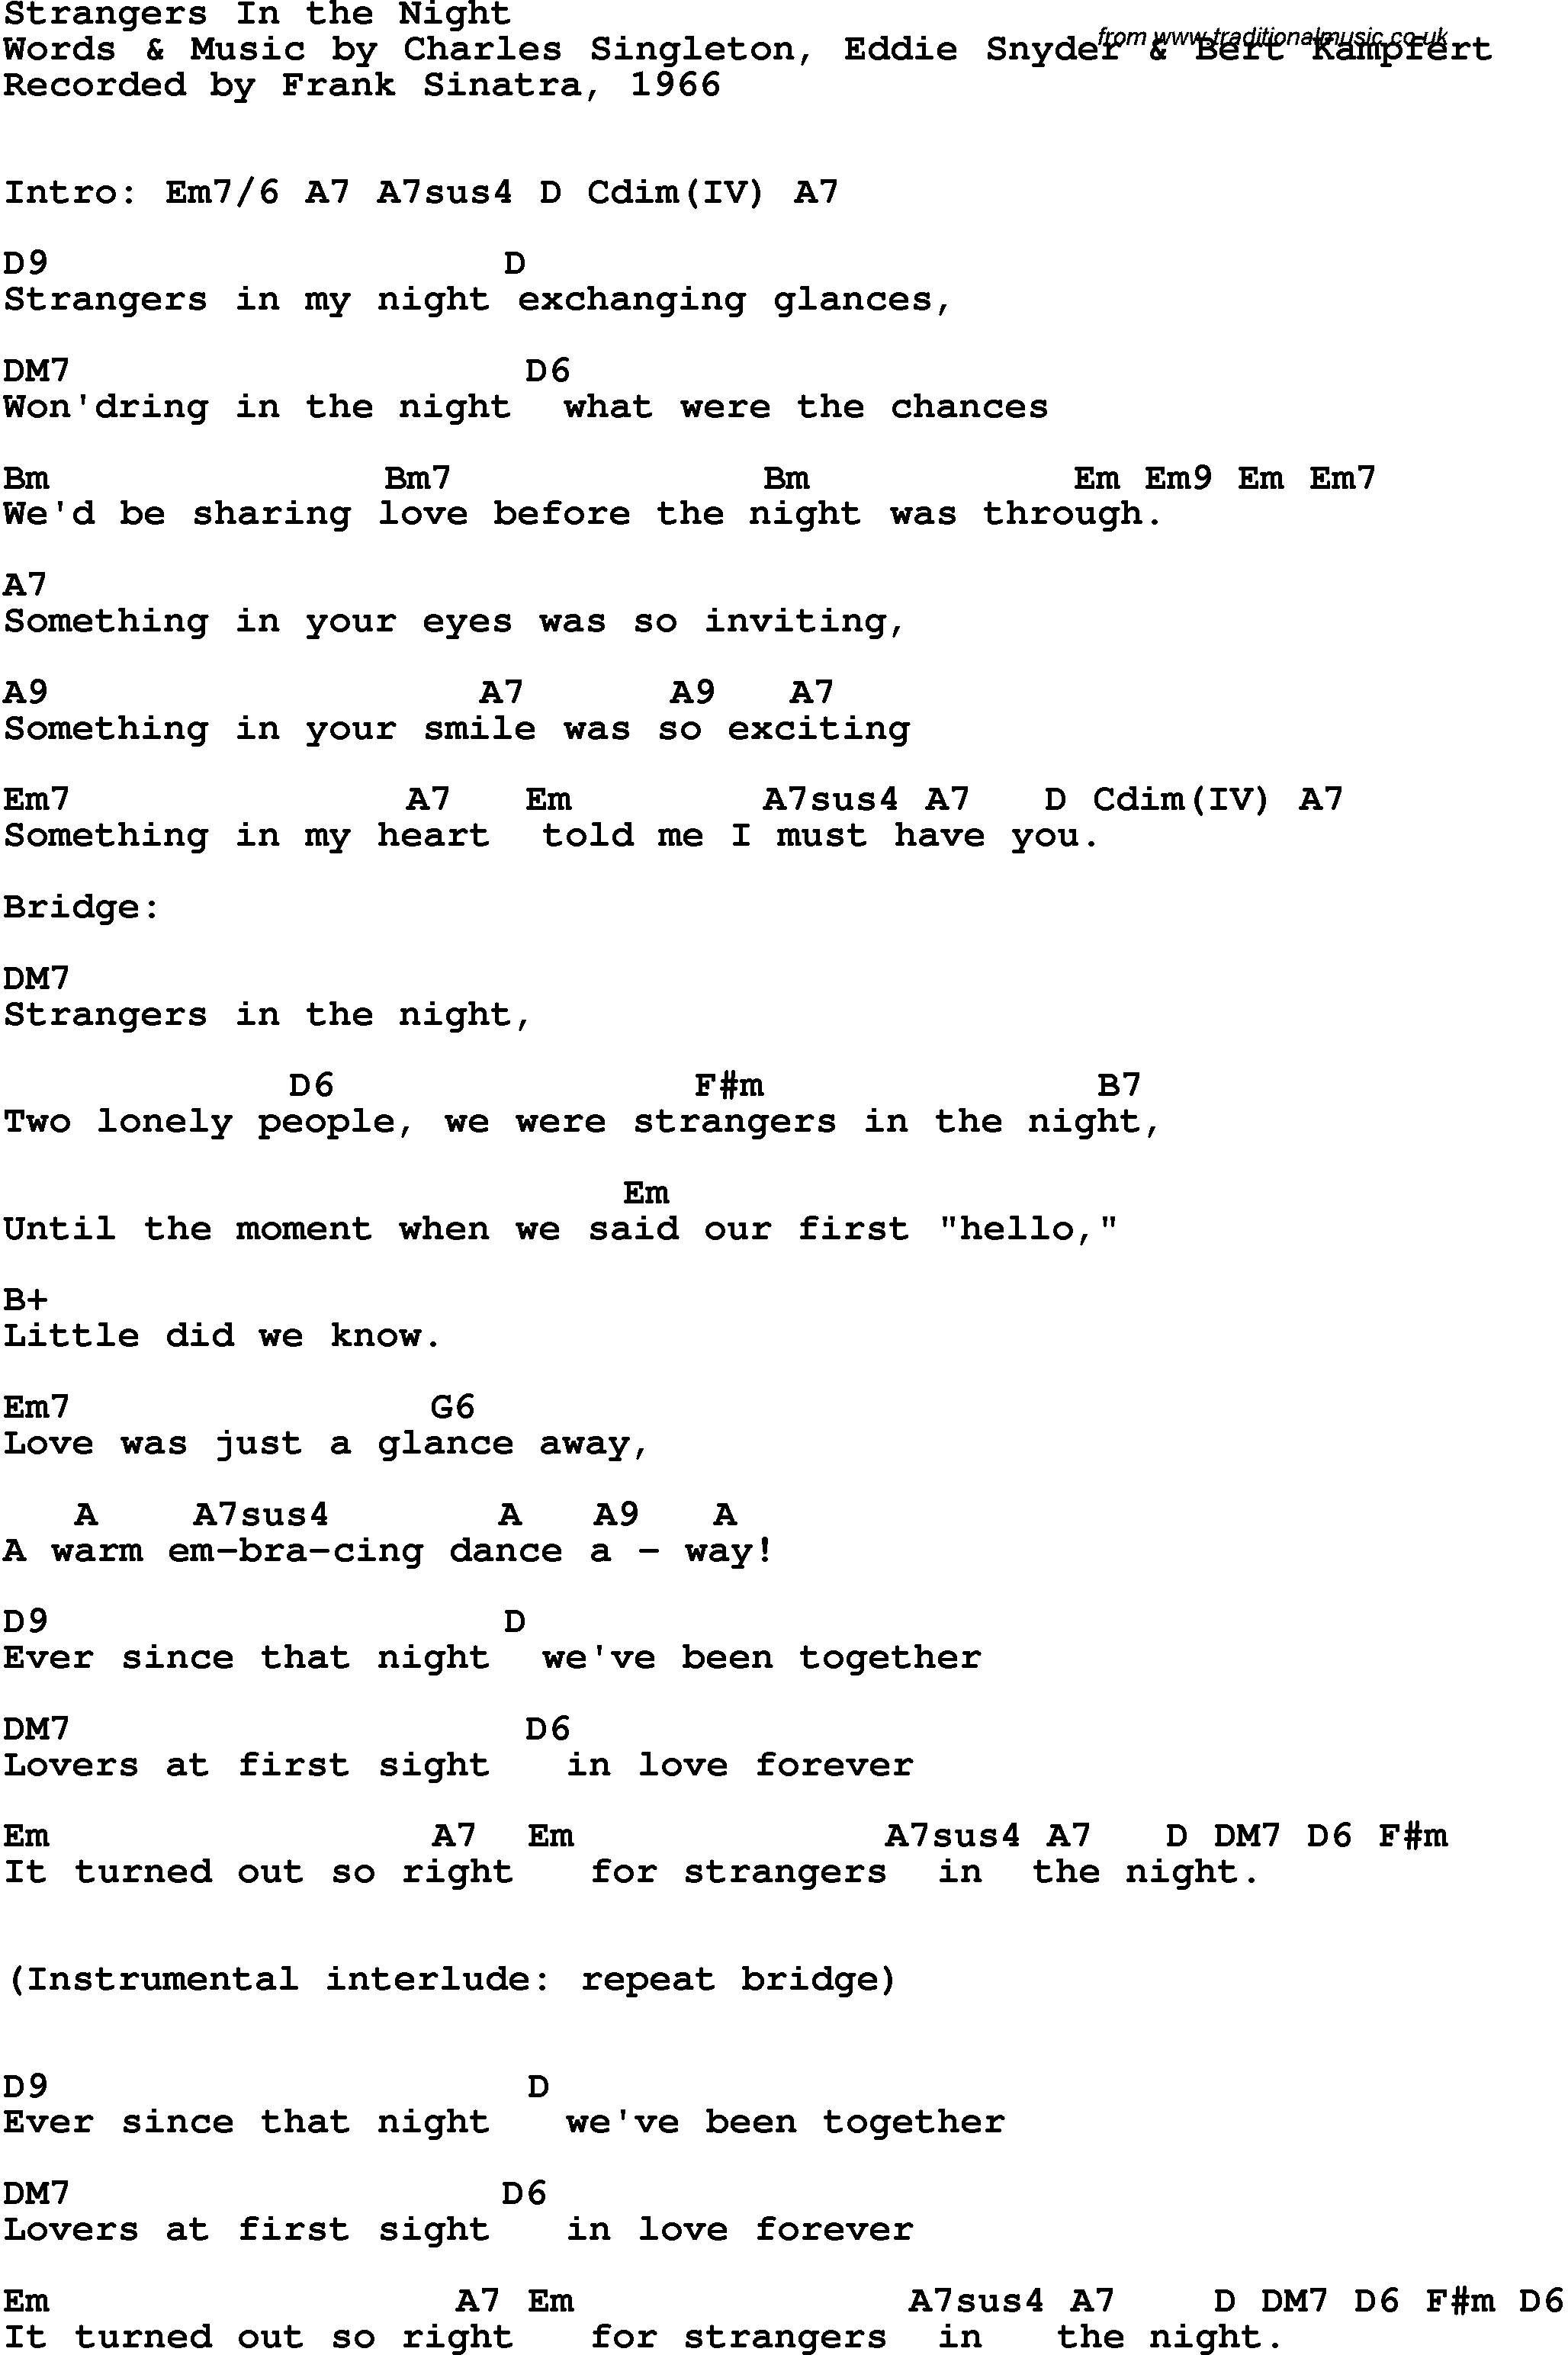 Song Lyrics With Guitar Chords For Strangers In The Night Frank